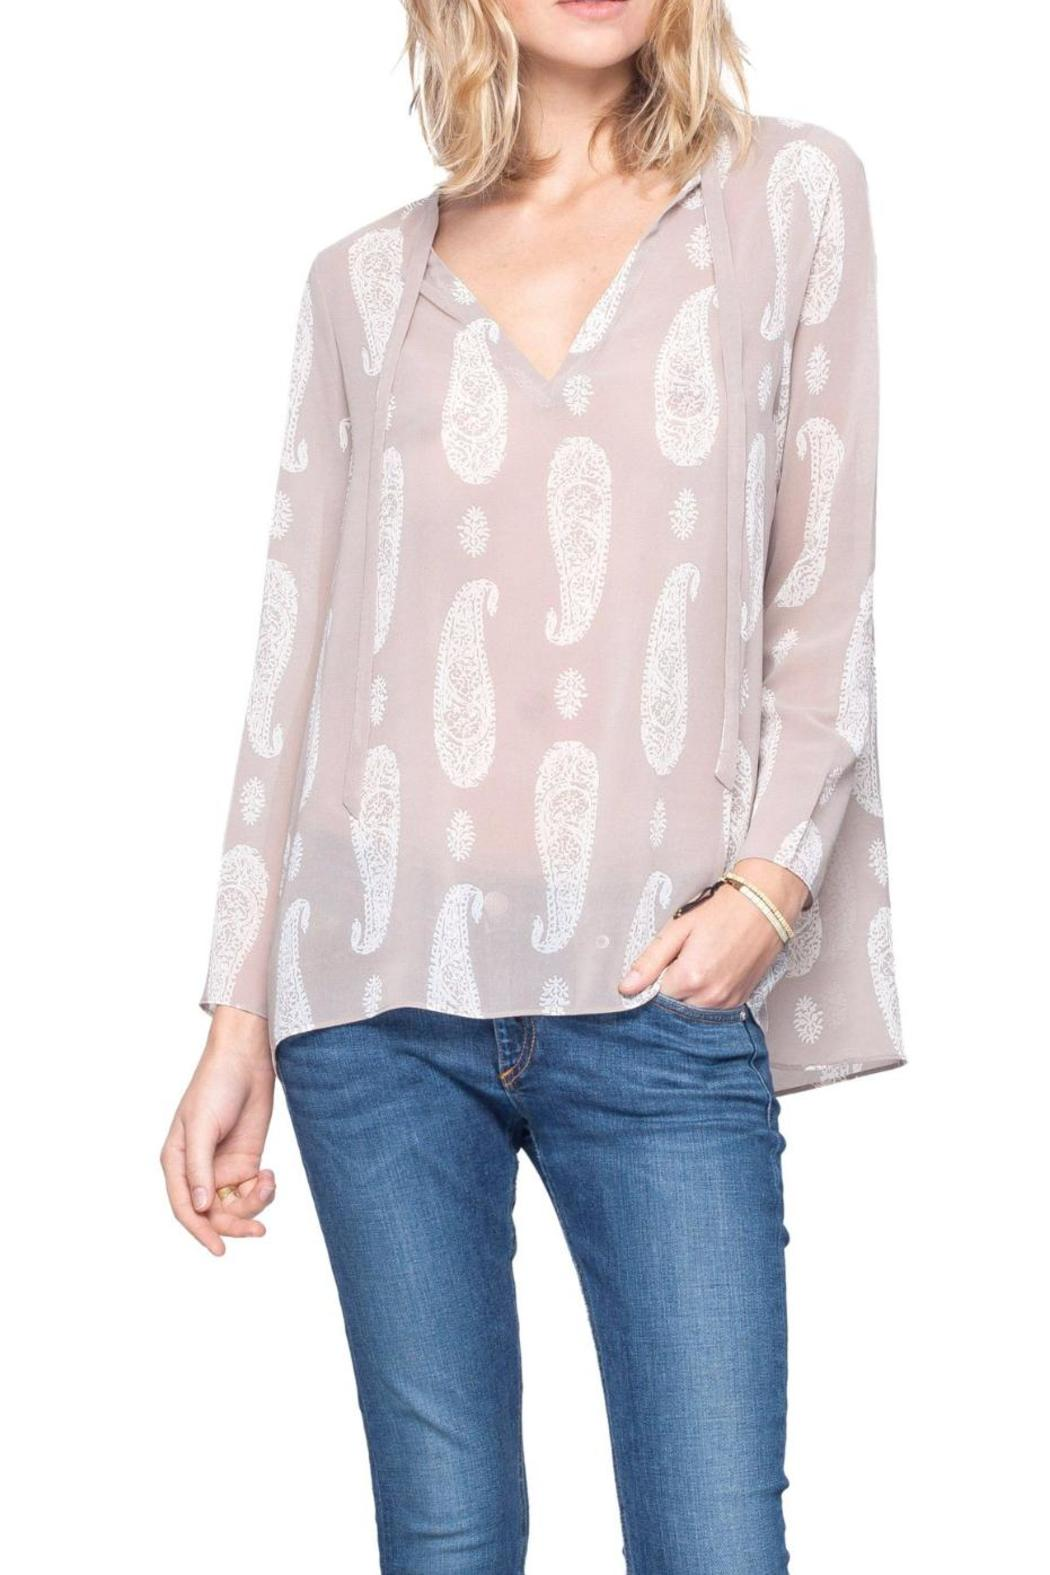 Gentle Fawn Paisley Print Top - Main Image